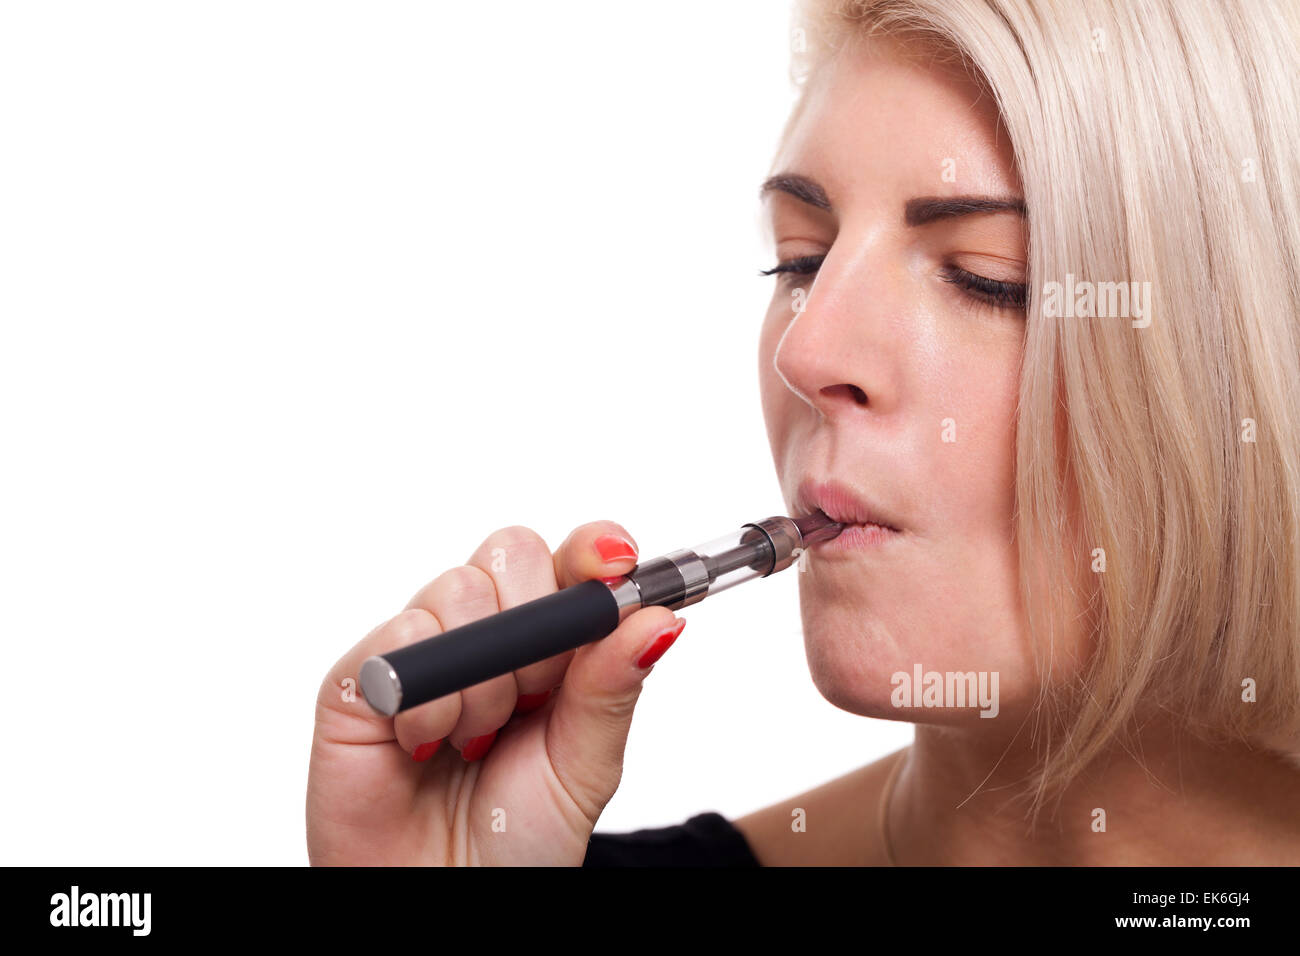 Close up Serious Facial Expression of a Young Blond Woman Smoking Using E- Cigarette on a White Background - Stock Image